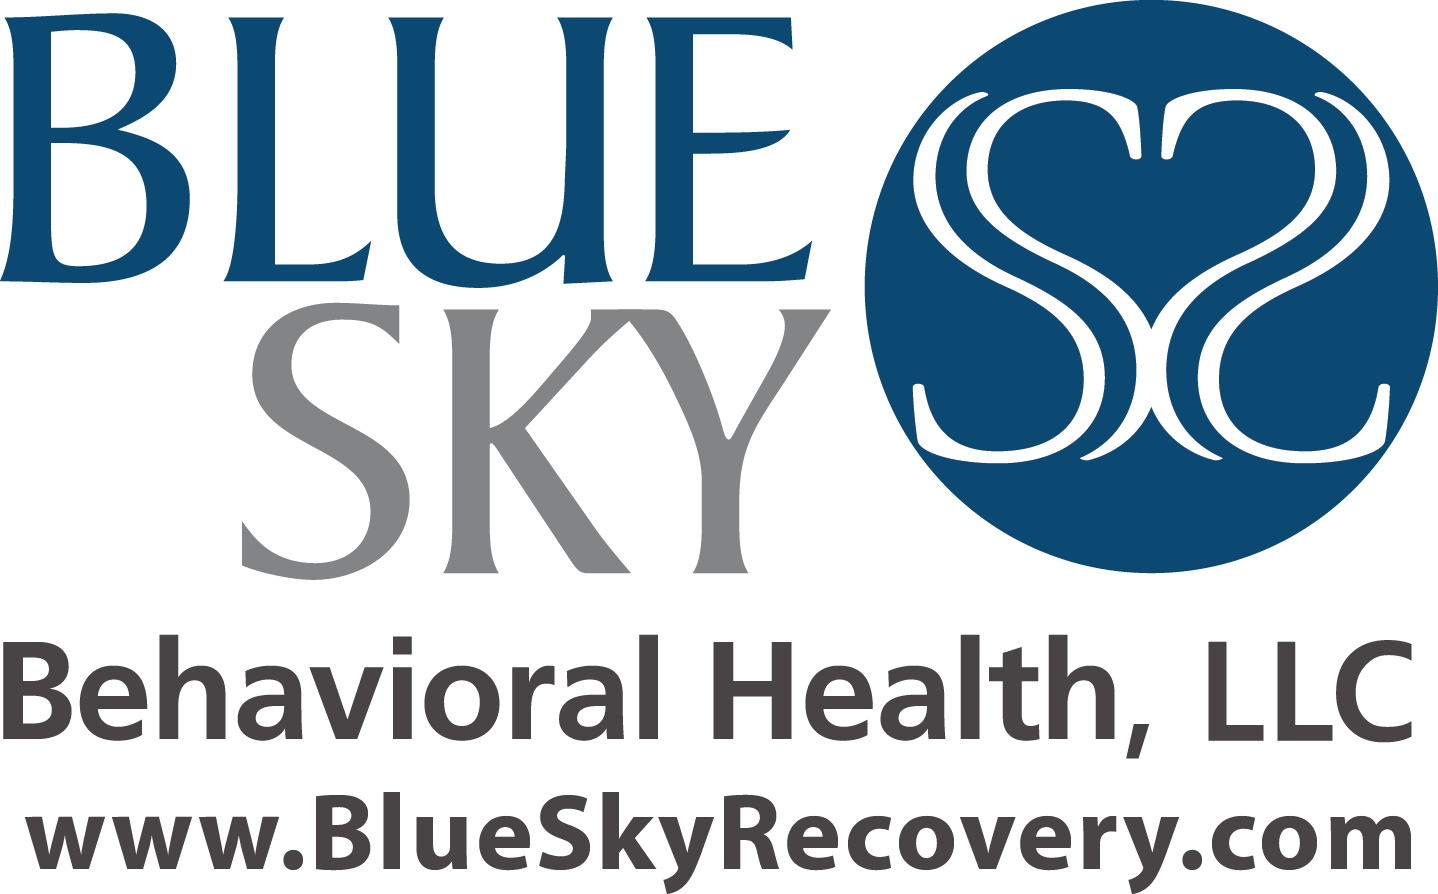 Blue Sky Behavioral Health